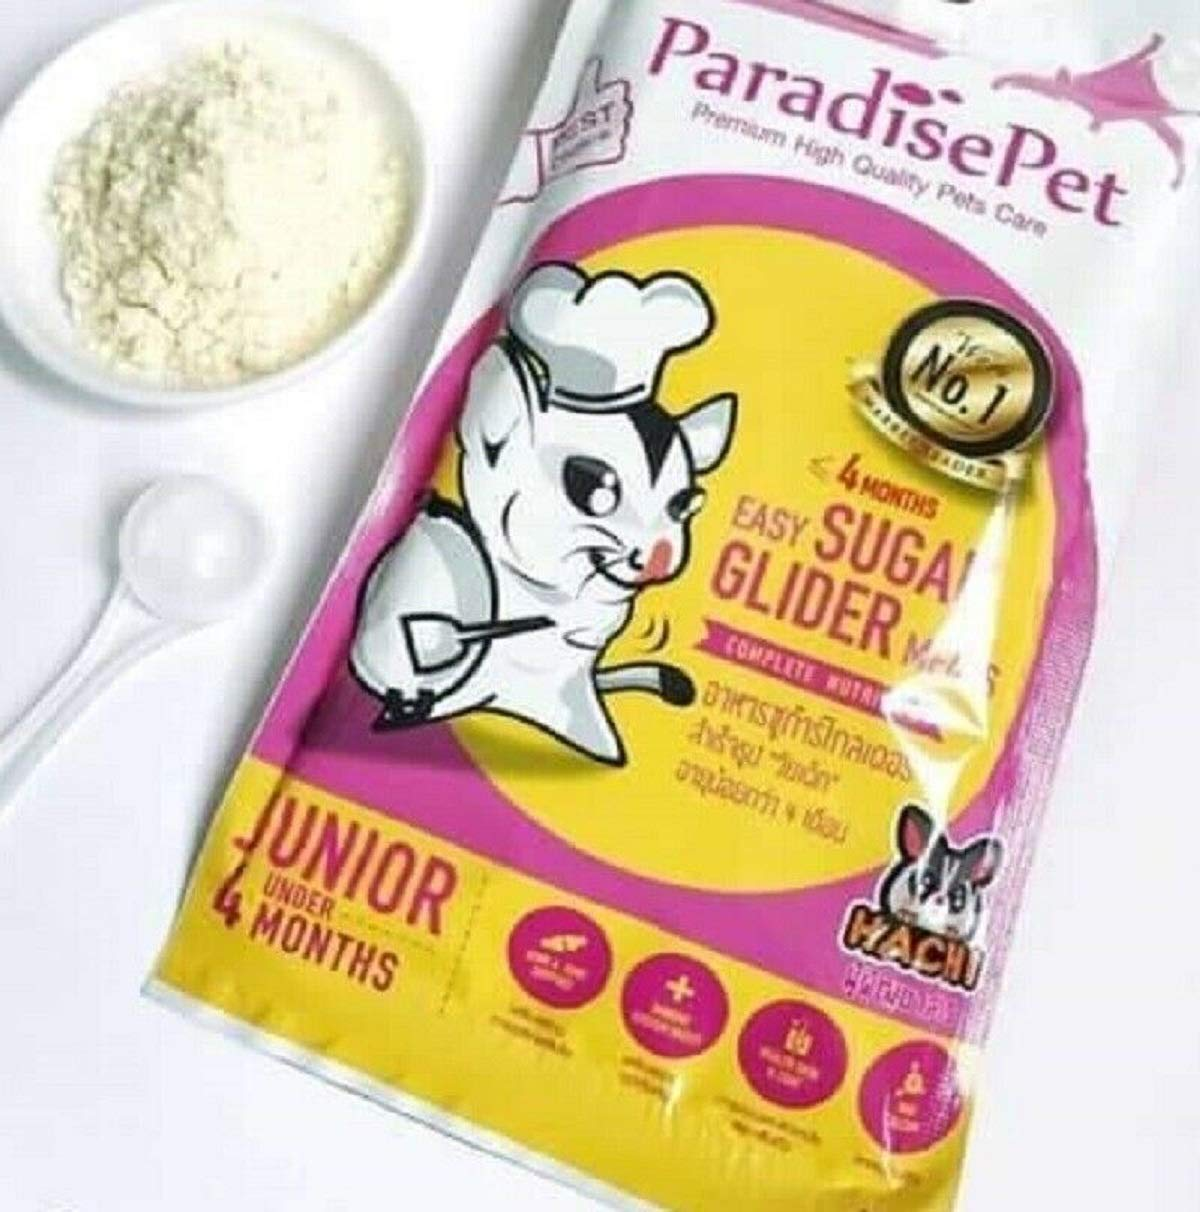 1 Pcs Instant Food Powder Complete Nutrition Meals for Sugar Glider Marmoset Squirrel Chinchillas Hamster or Small Exotic Pet, Premium Quality Pets Care for Junior or Under 4 Month (100 g.) by Polar Bear's Pet Shop